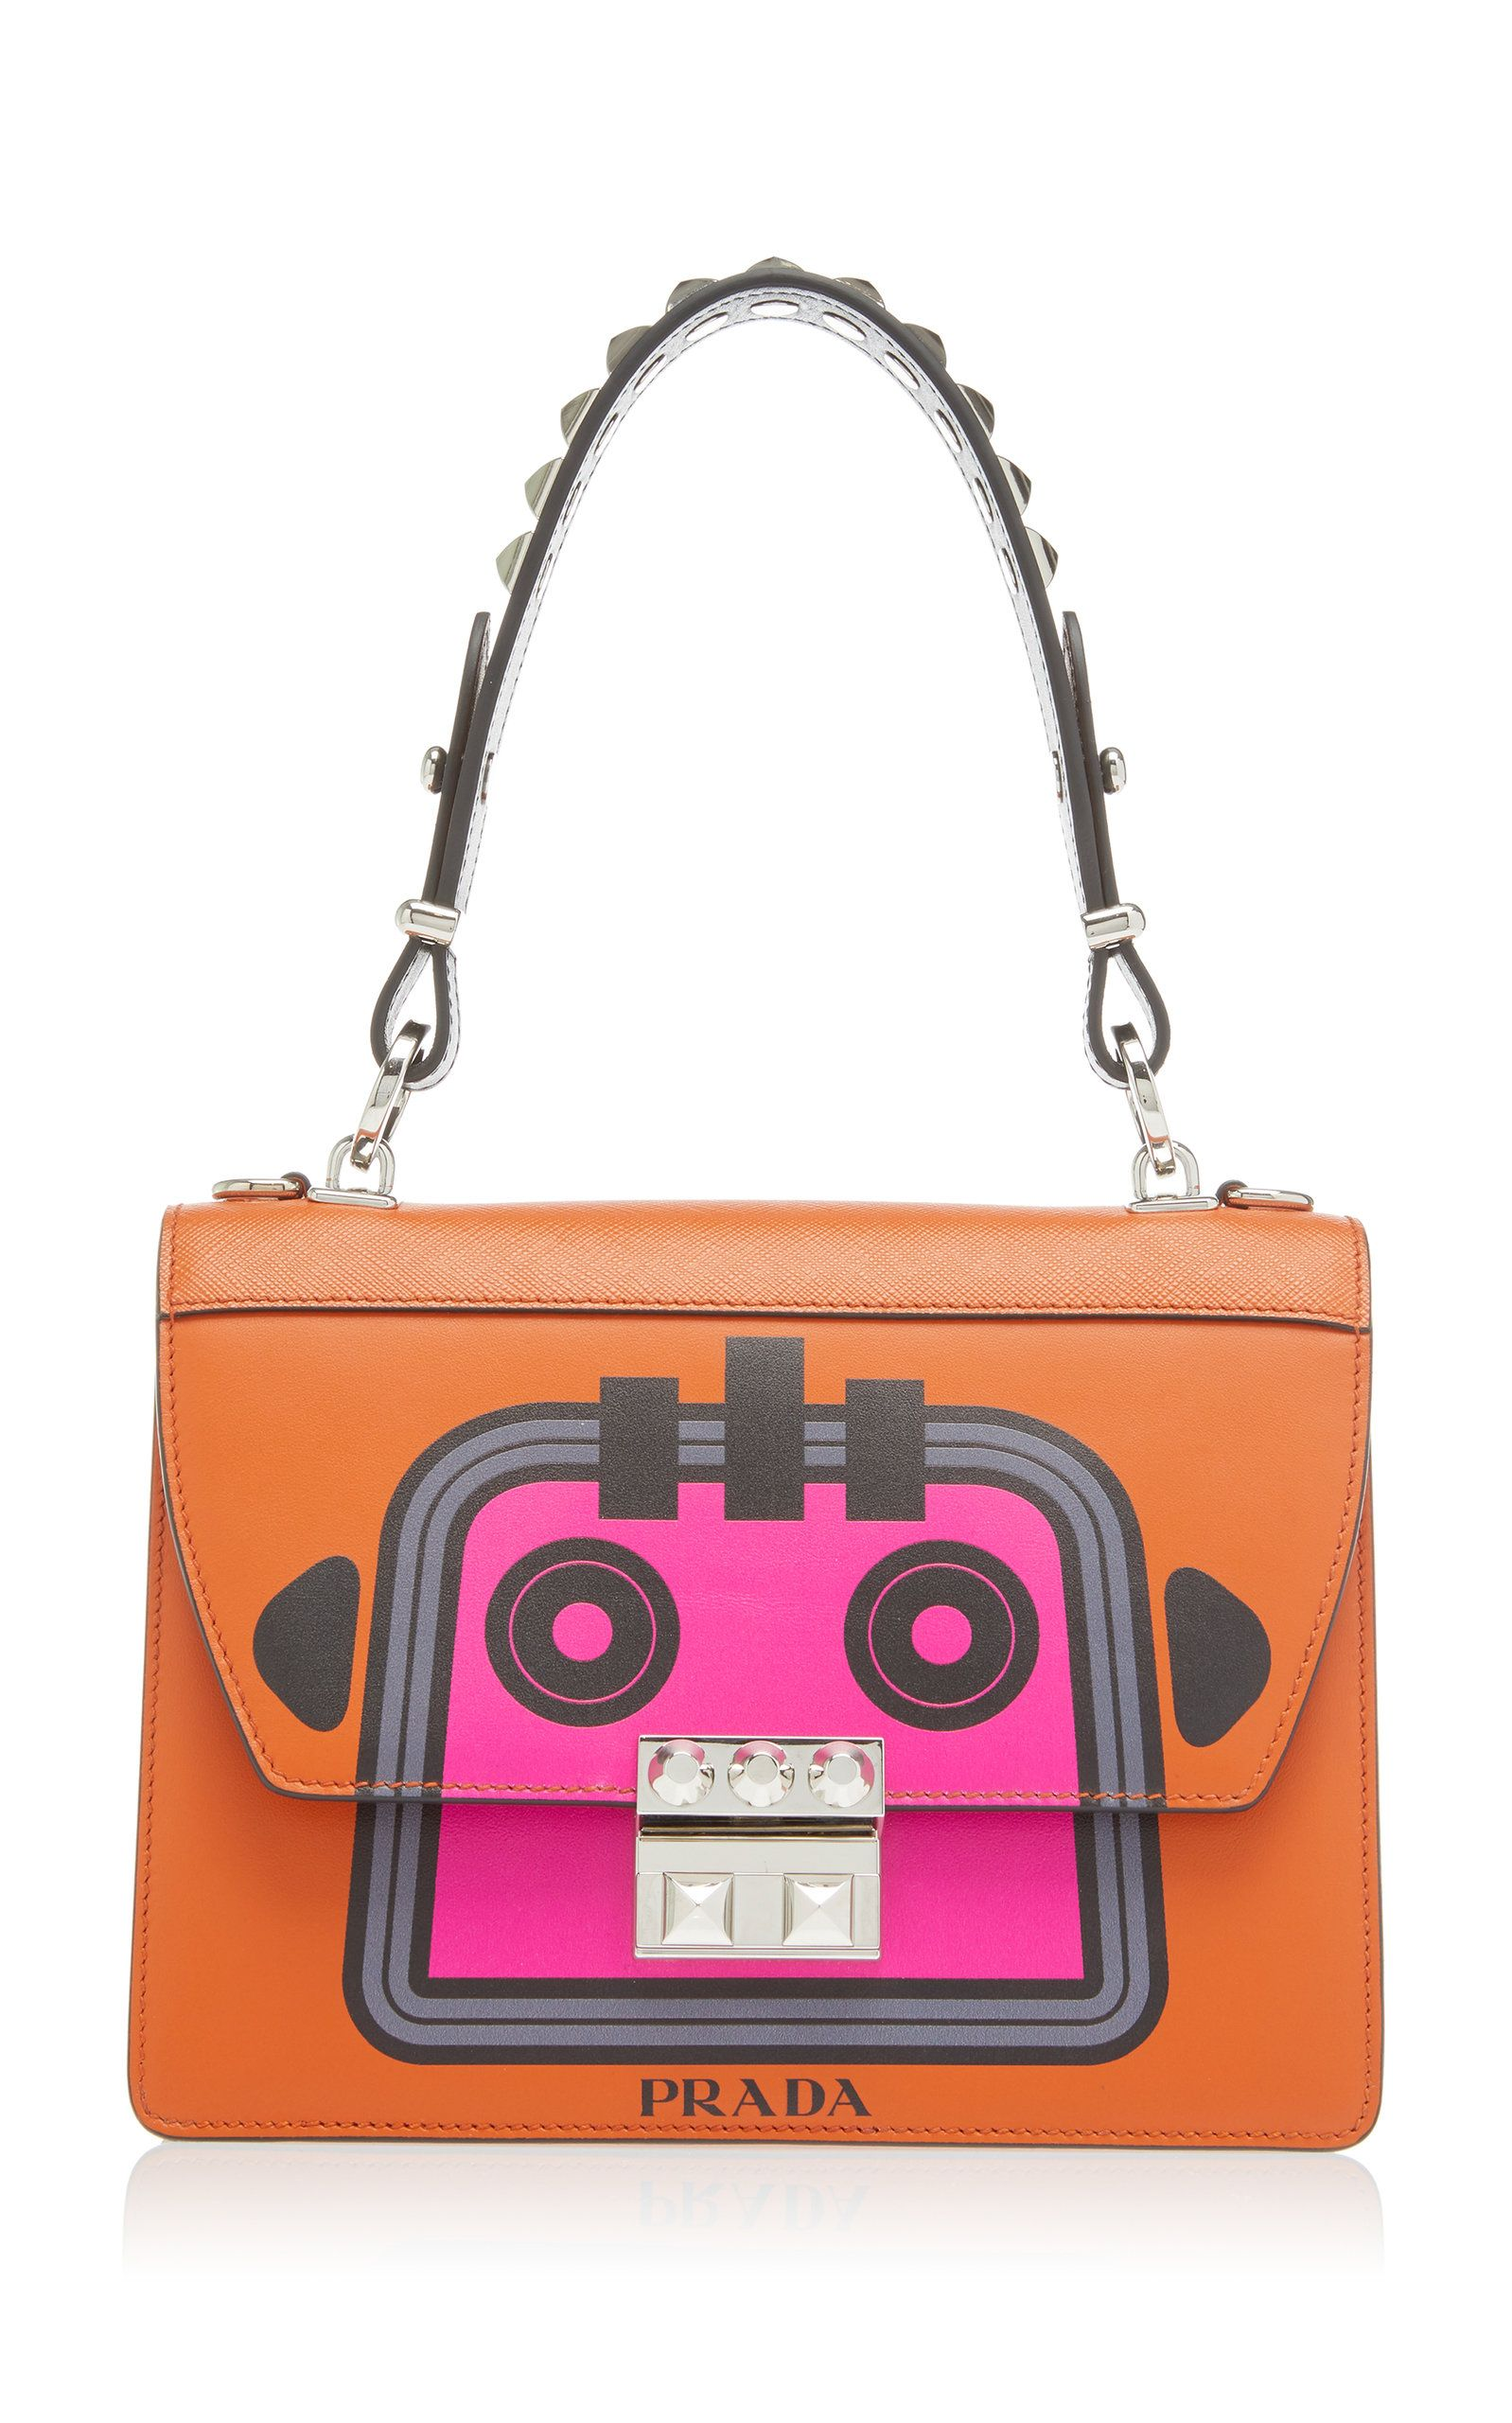 Prada Saffiano Robot Small Shoulder Bag